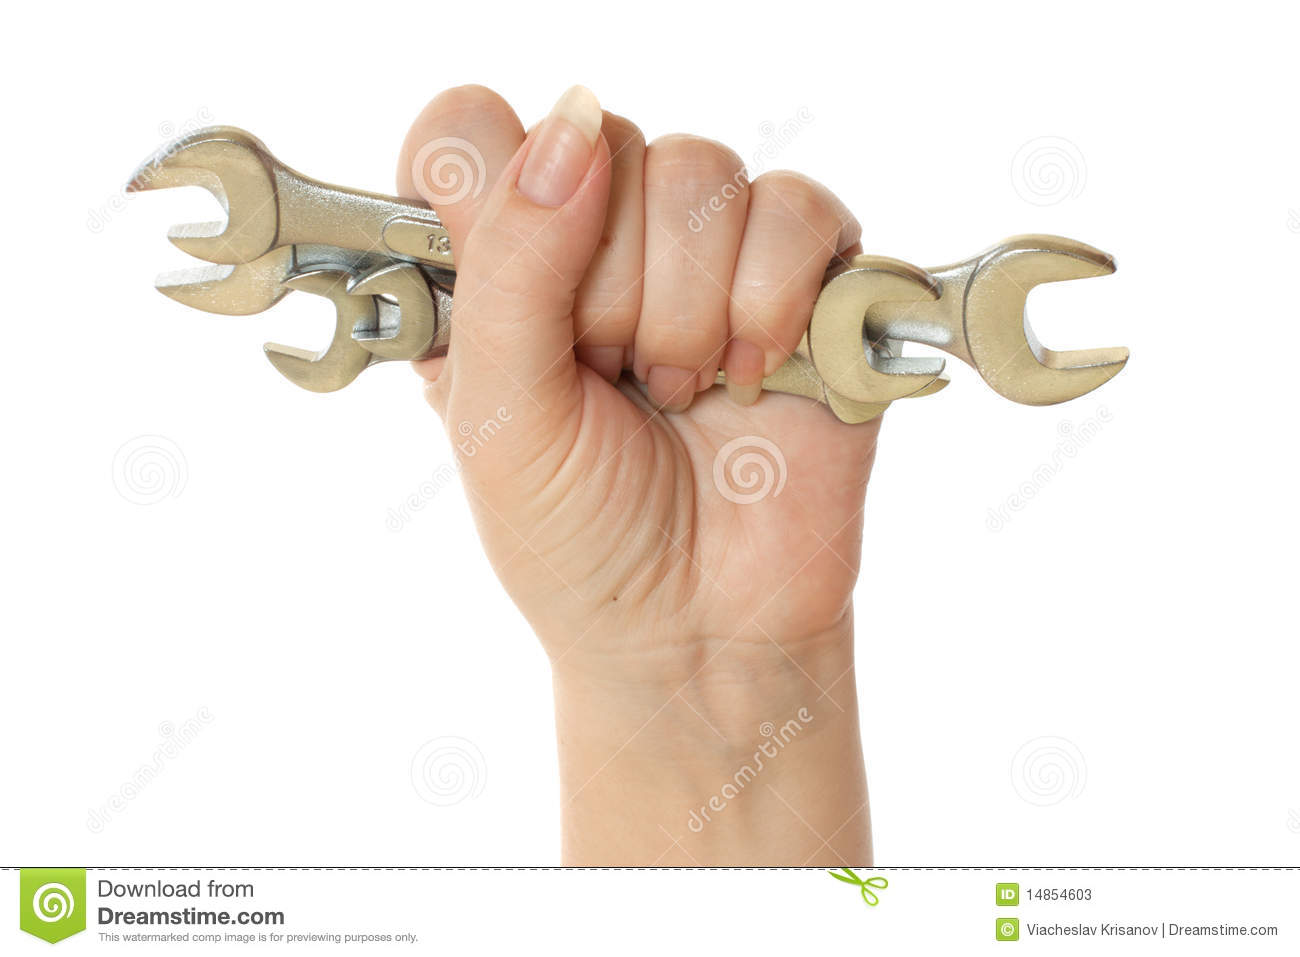 Female hand holding wrench tools